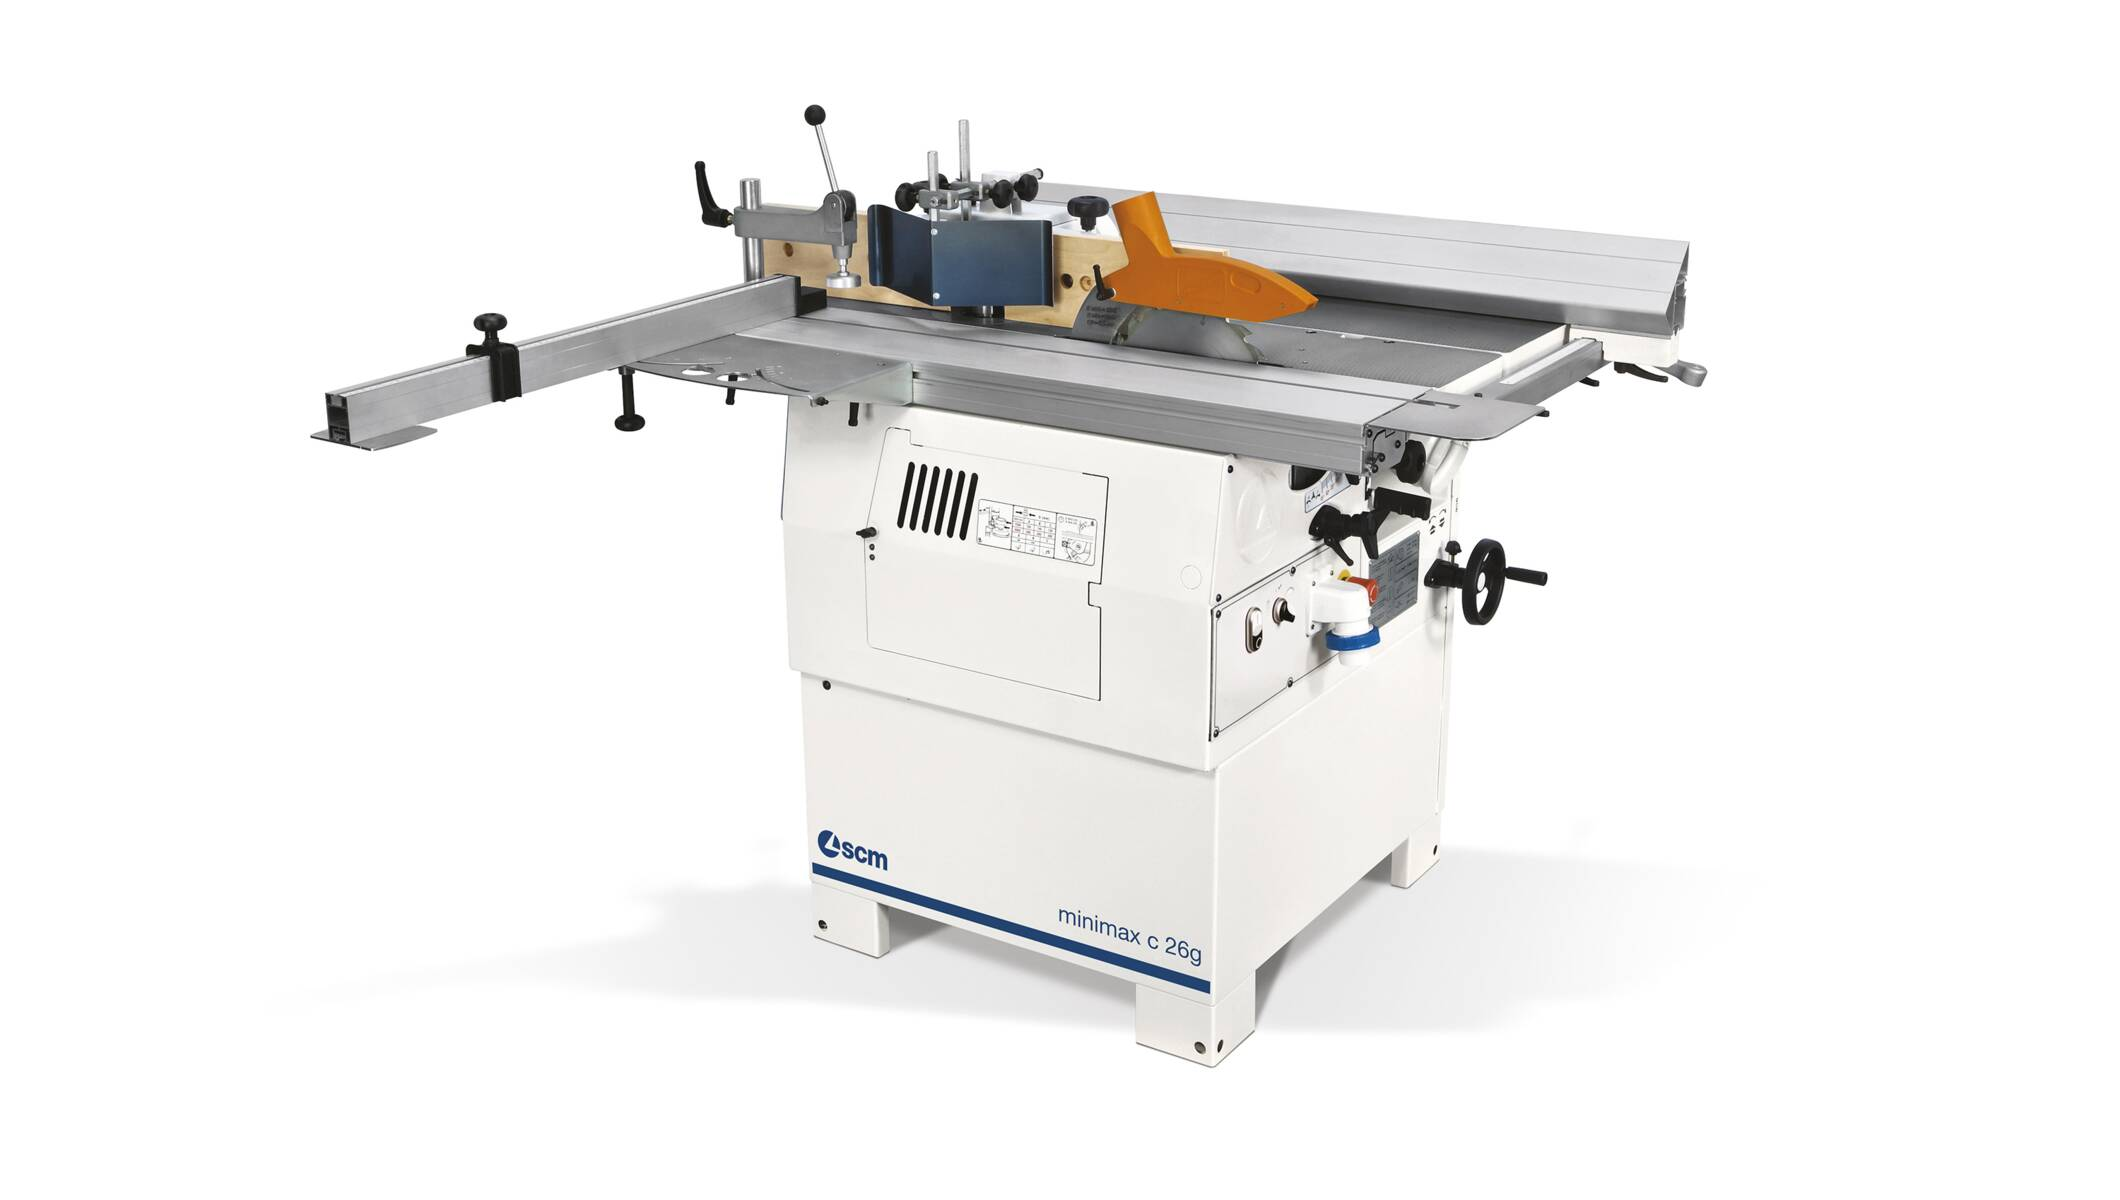 Standaard machines - Universele combinatiemachines - minimax c 26g